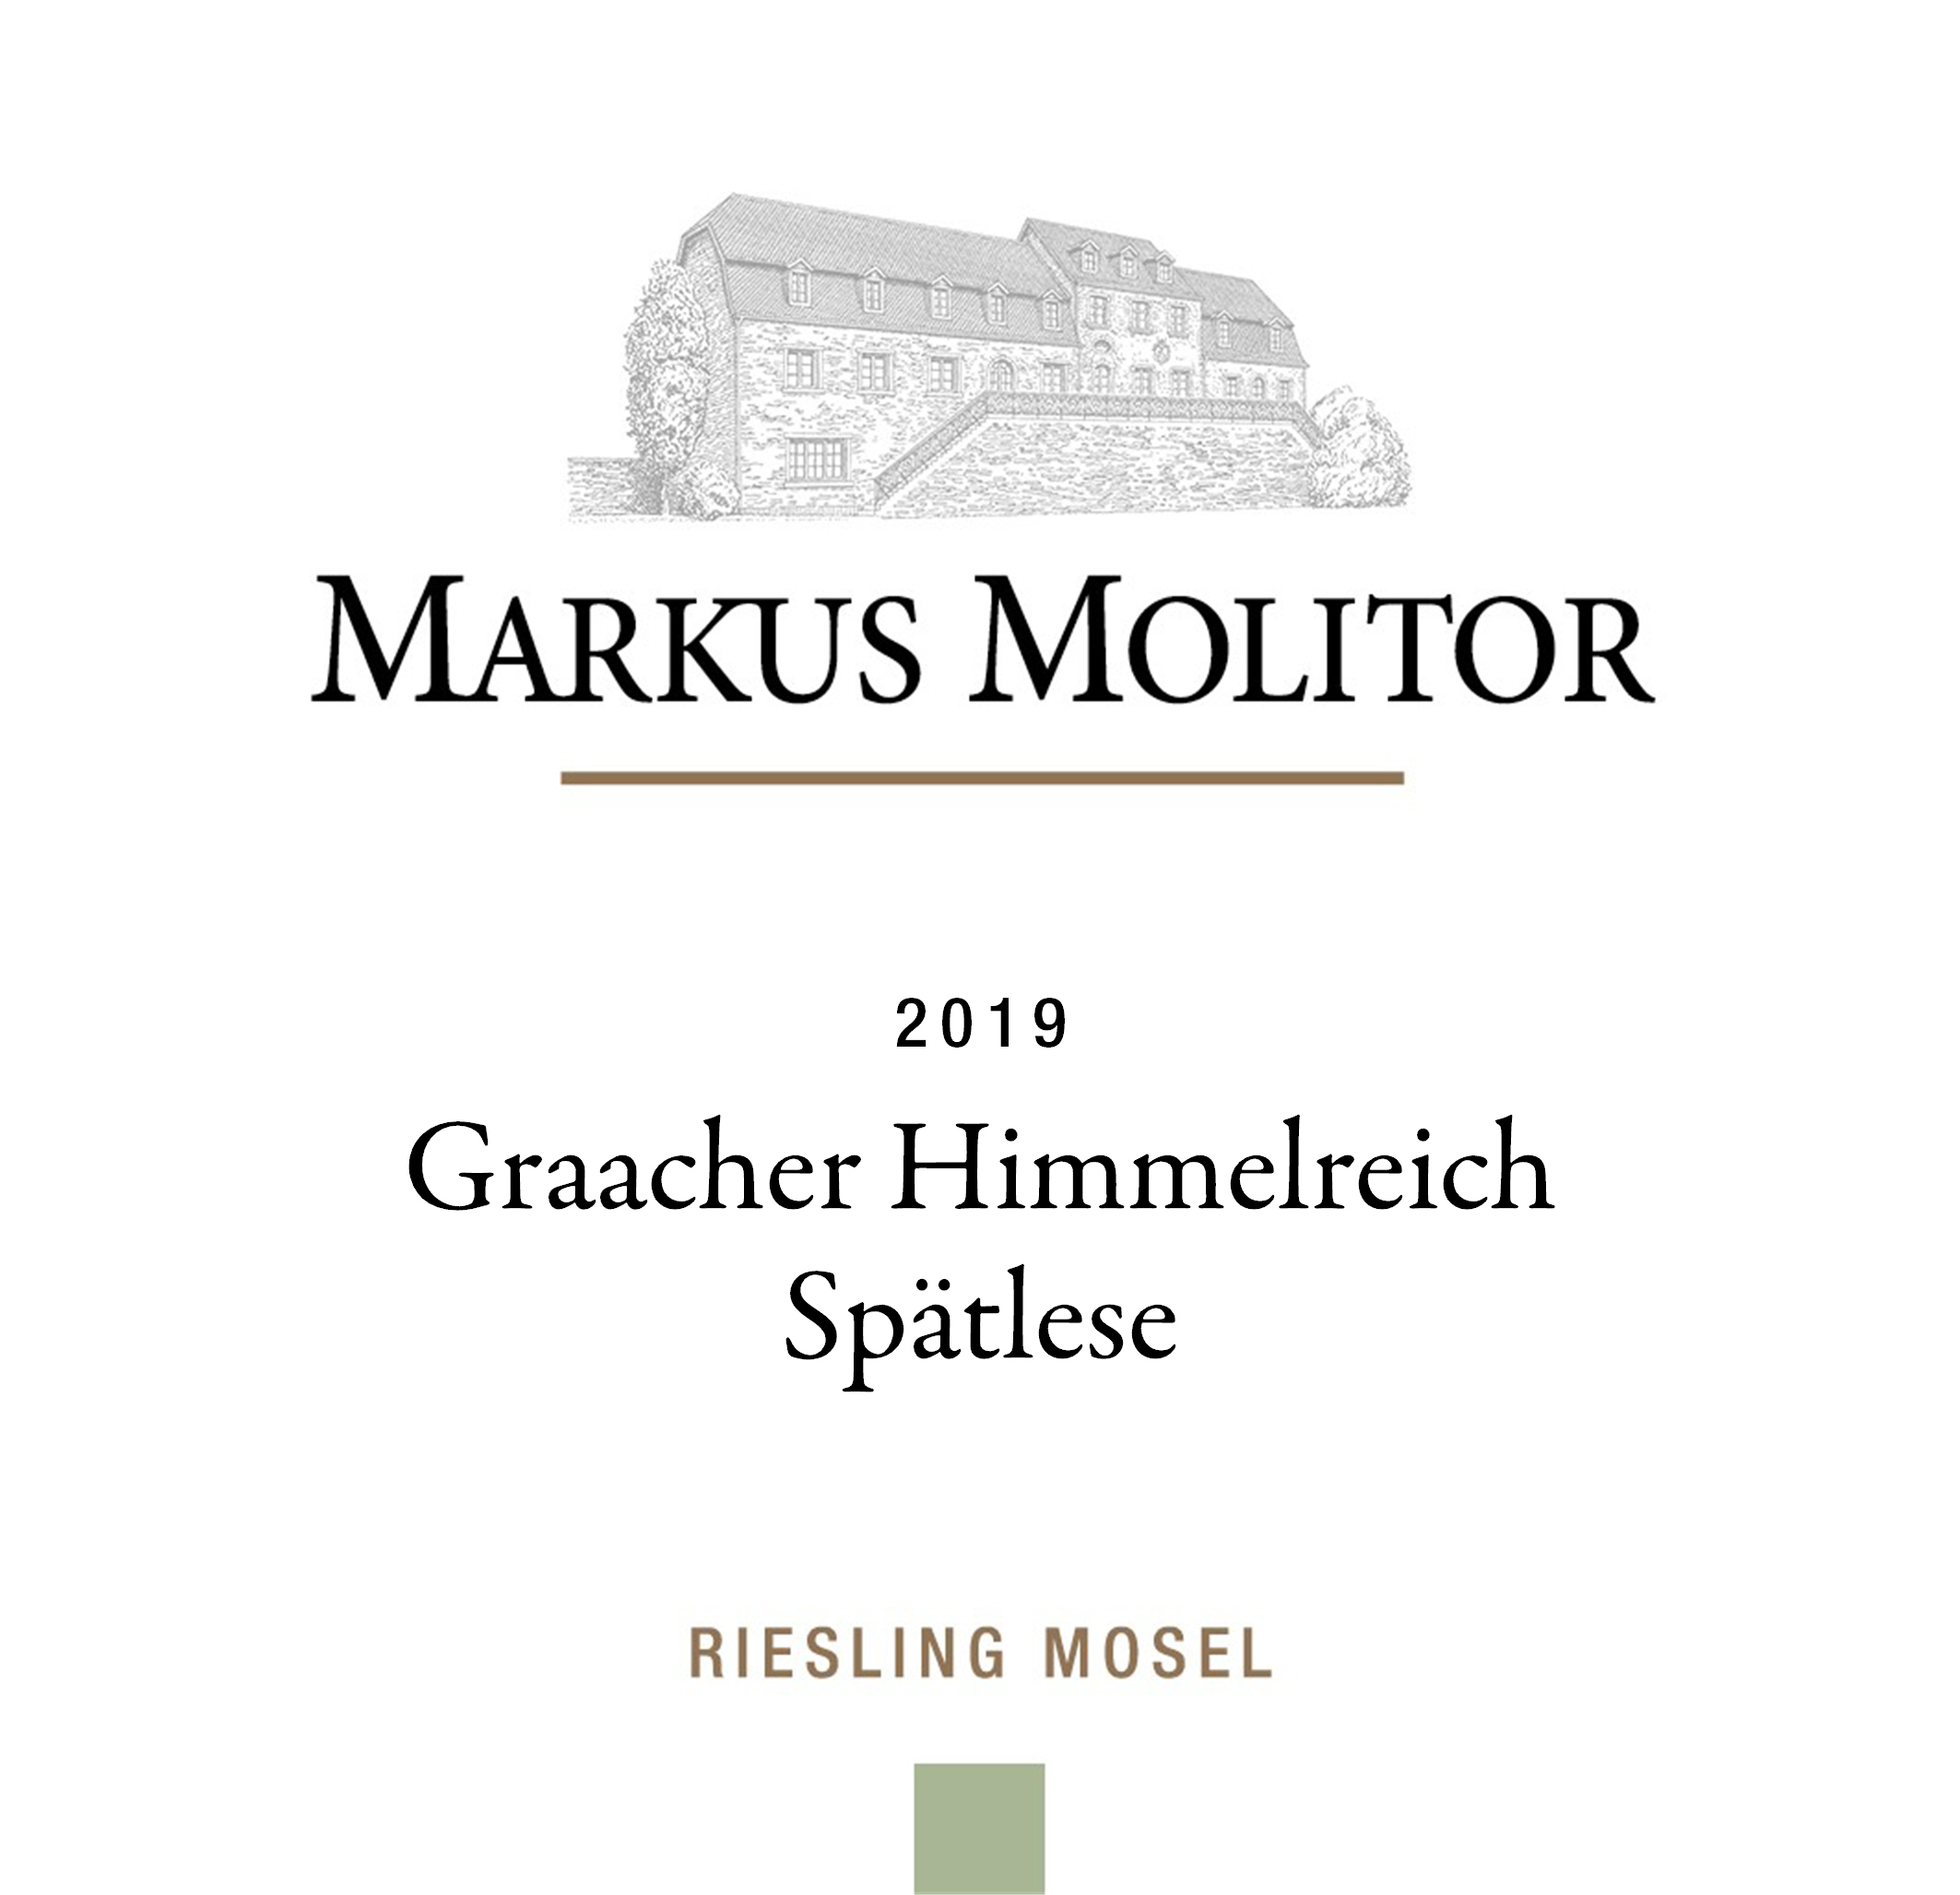 2017 Markus Molitor Graacher Himmelreich Riesling Spatlese (Green Capsule)